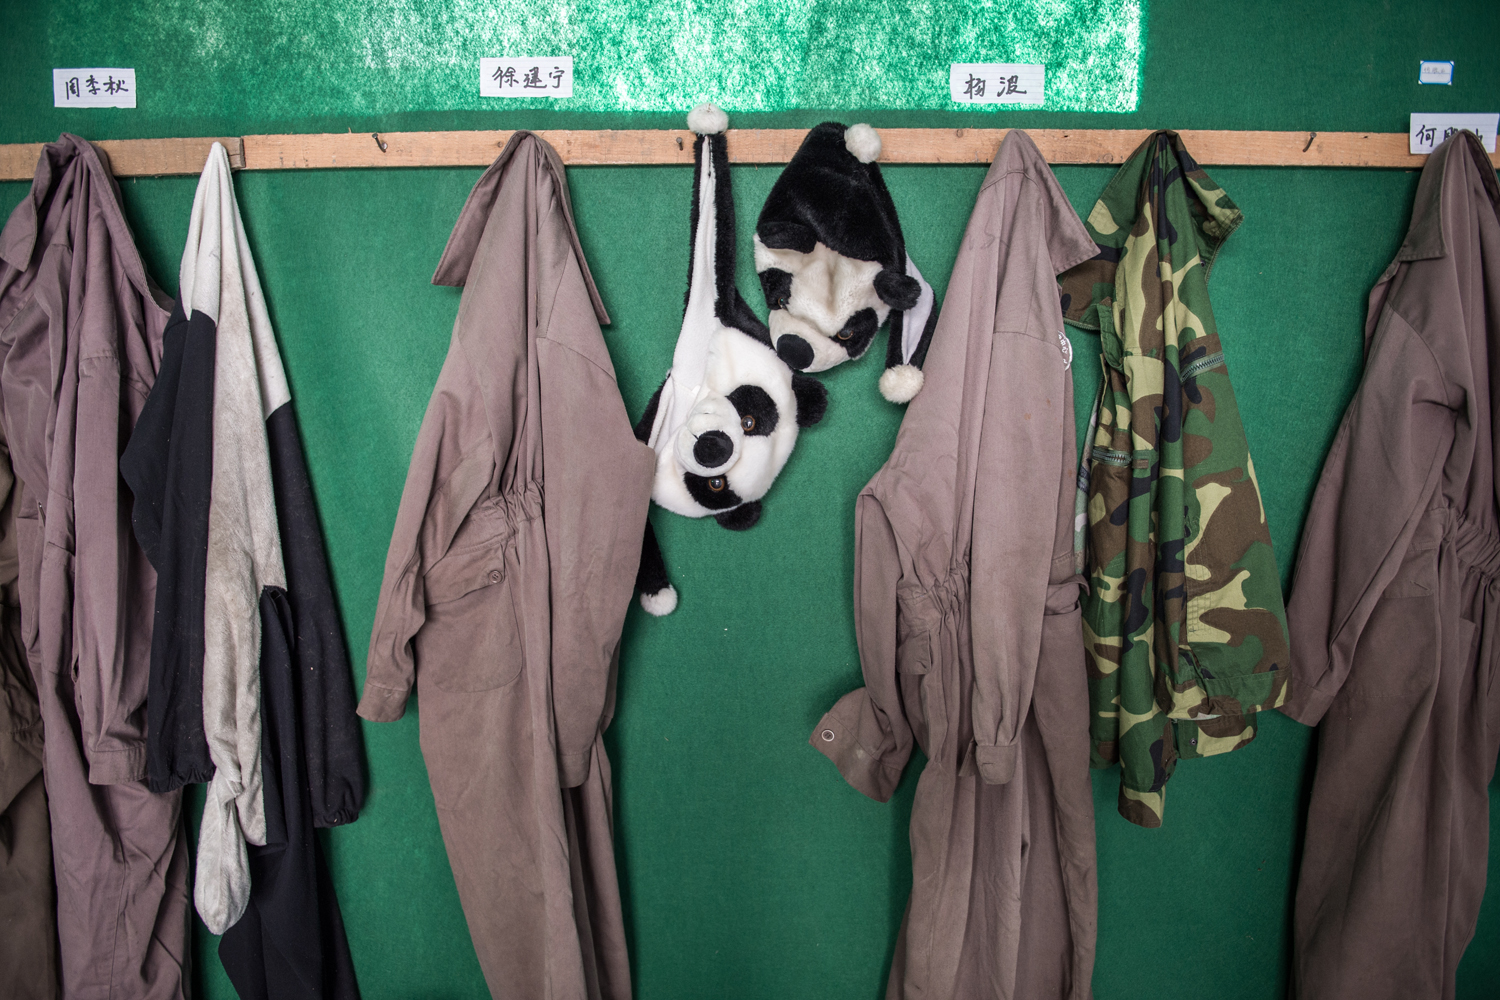 Panda costumes hang at the Wolong National Nature Reserve. Anyone who interacts with pandas slated for release into the wild must do so in disguise.